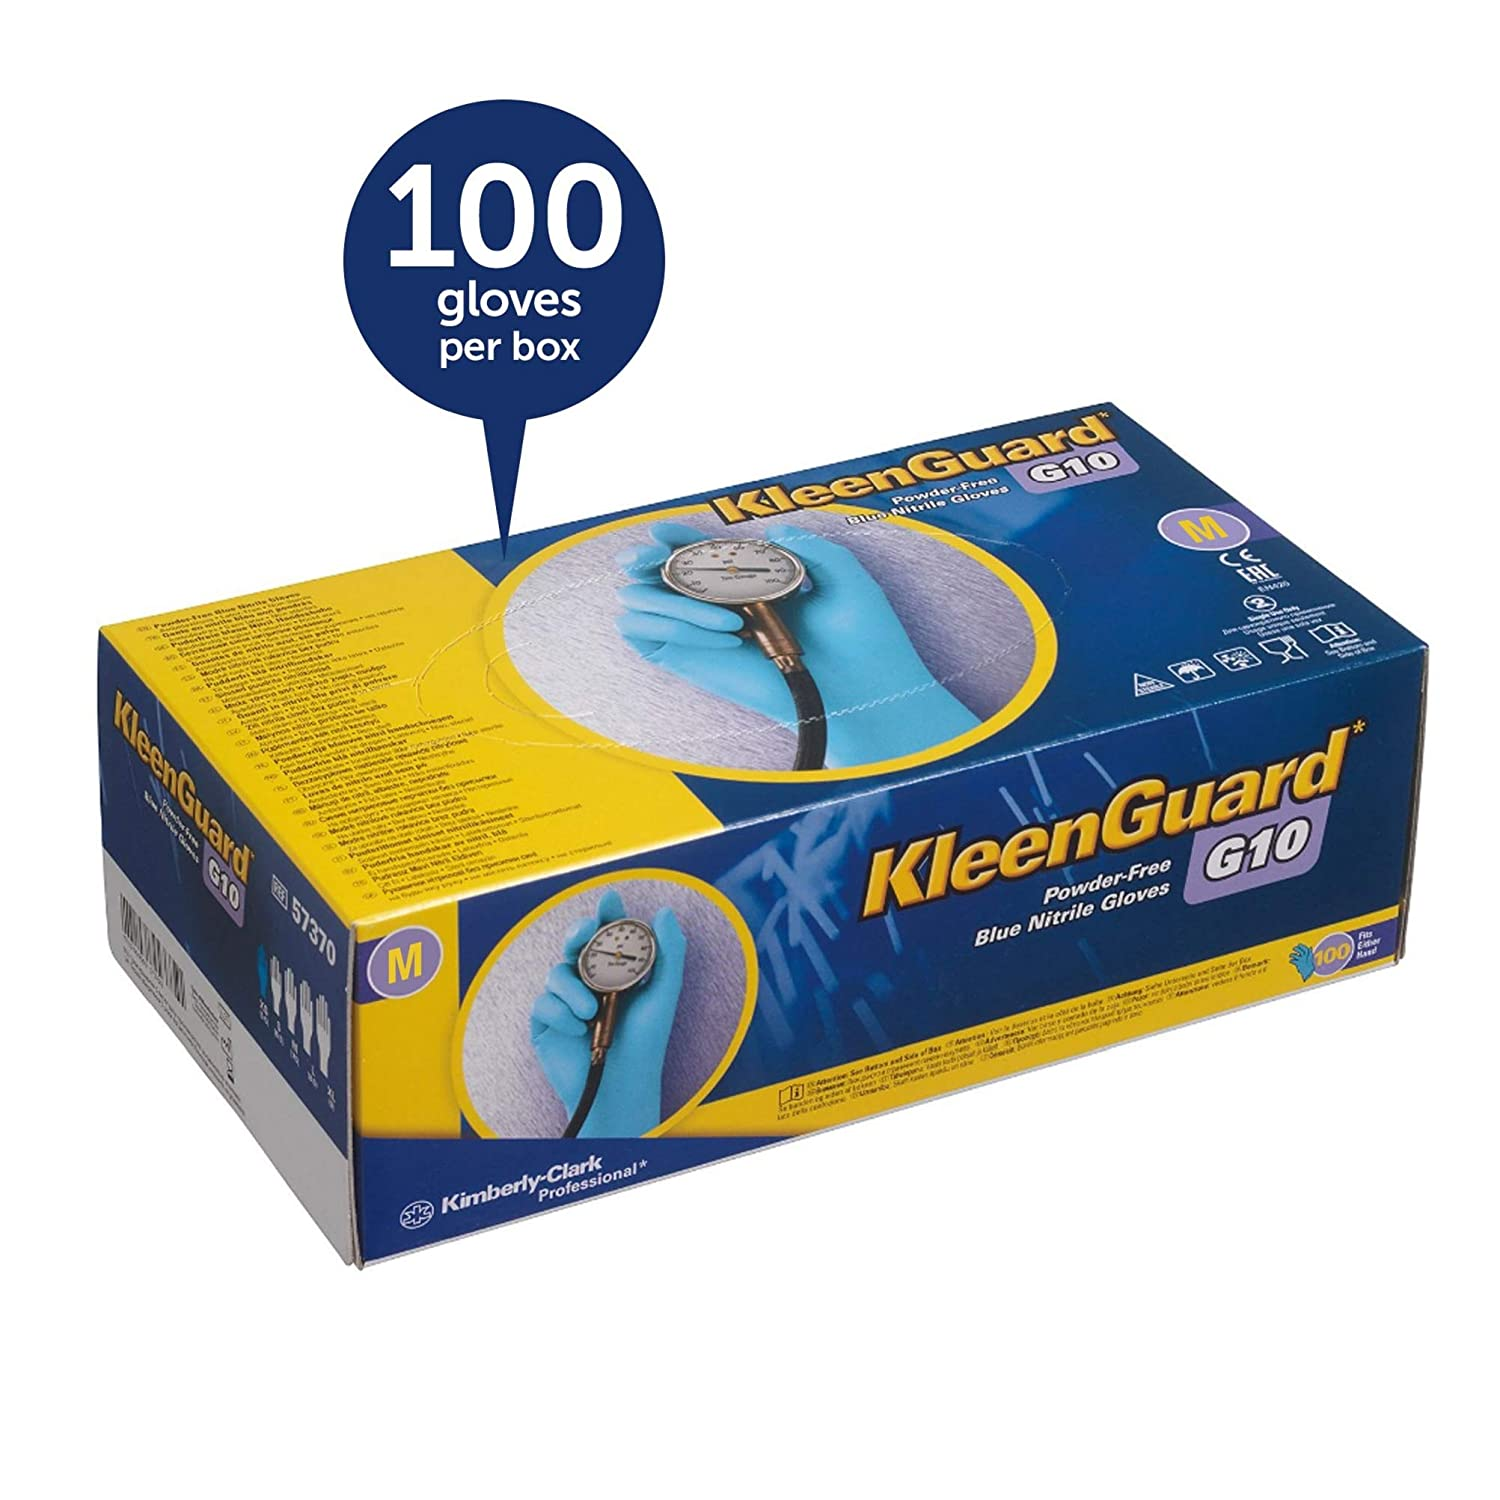 Kleenguard G10 Blue Nitrile Gloves (57372), Medium (Med.), Powder-Free, 6  Mil, Ambidextrous, Thin Mil, 100 Gloves/Box, 10 Boxes/Case: Amazon.com:  Industrial ...